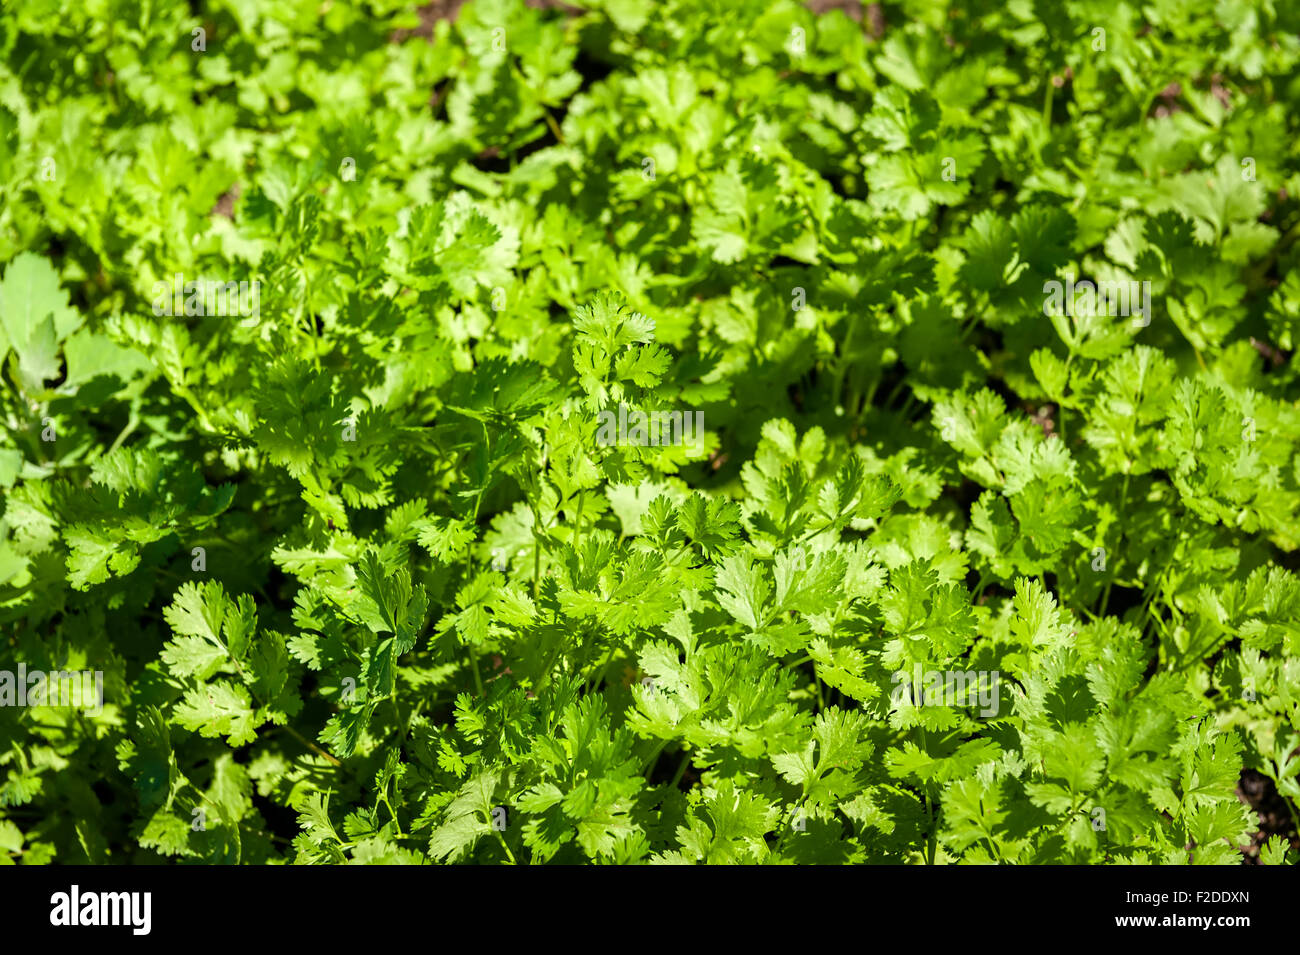 Cilantro patch in the garden. - Stock Image